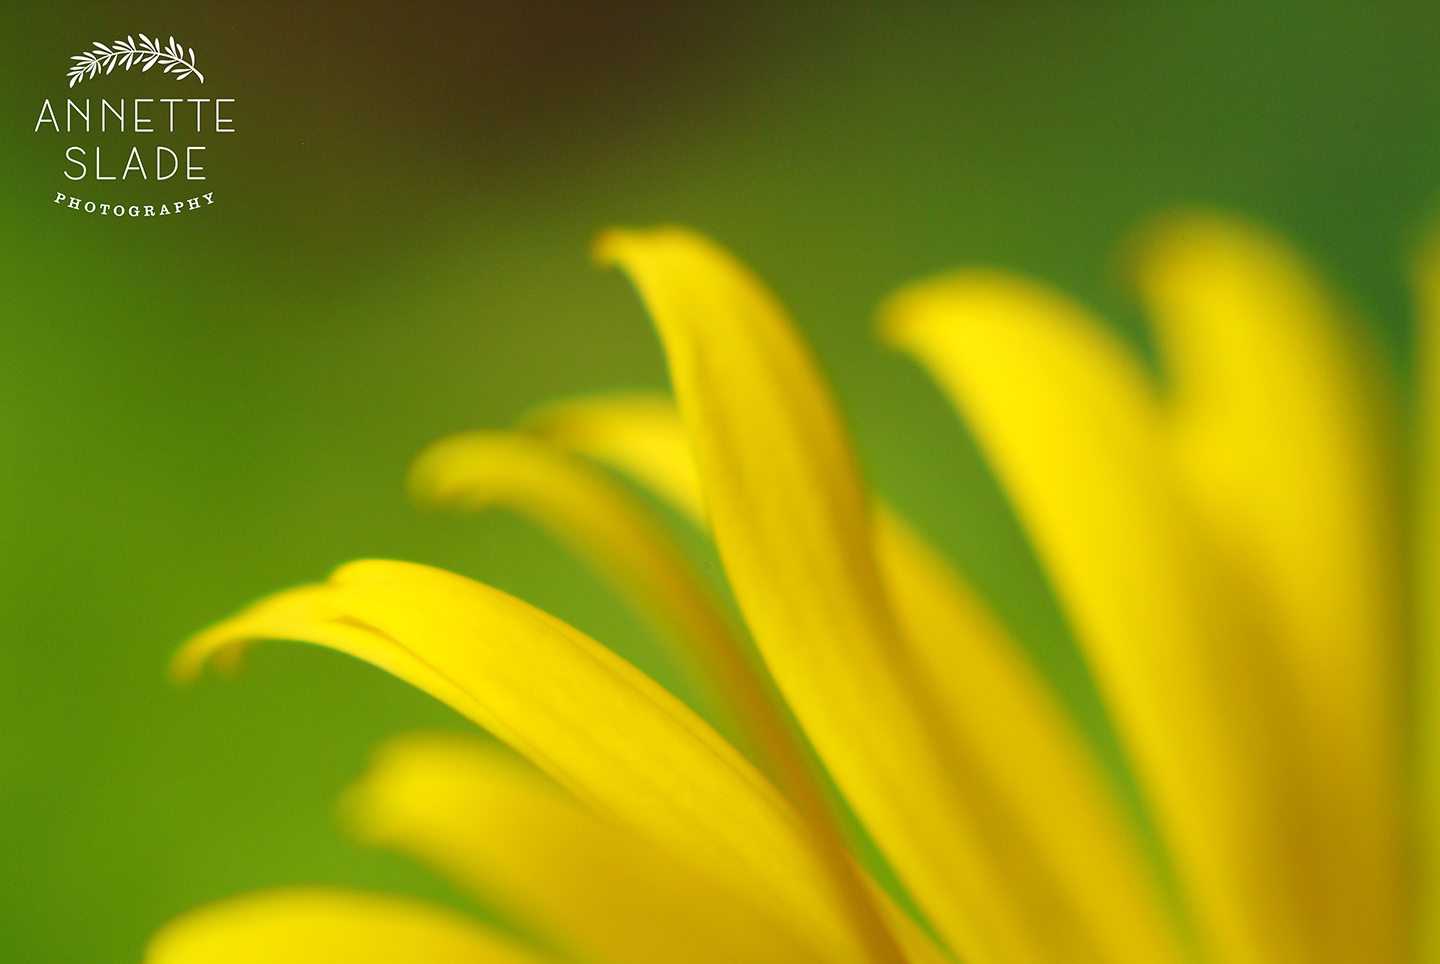 Slade Photo - Yellow Petals.jpg